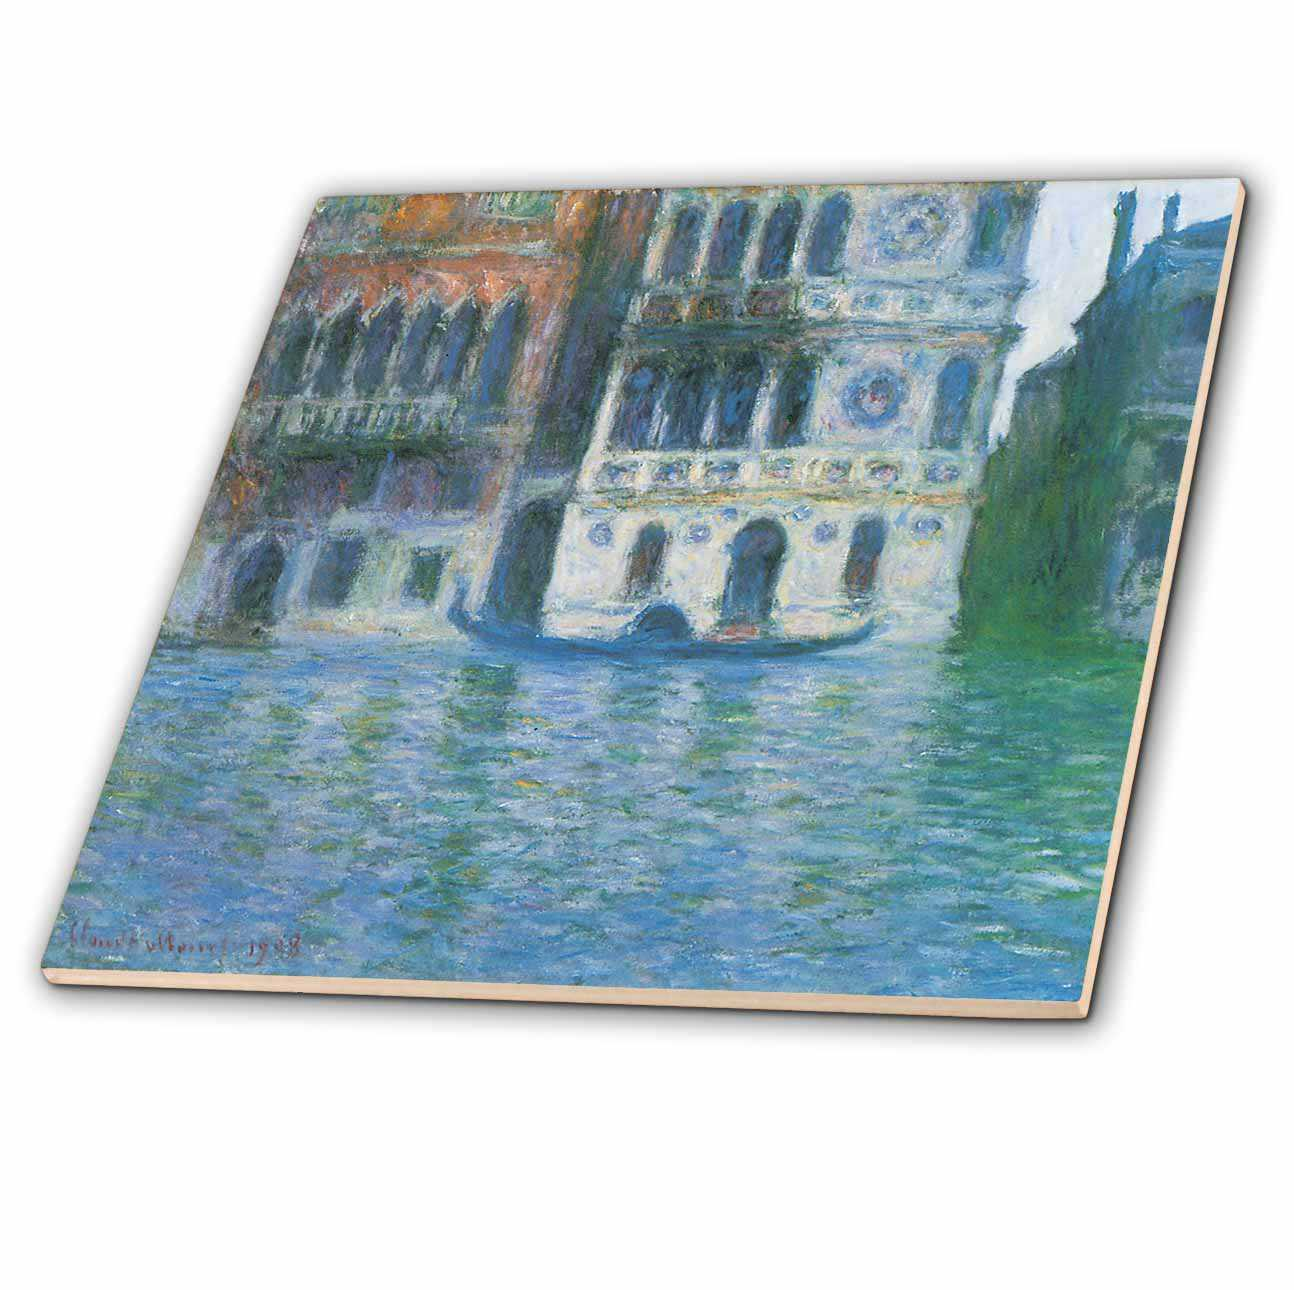 3dRose The Palazzo Dario by Claude Monet 1908 - Ceramic Tile, 4-inch